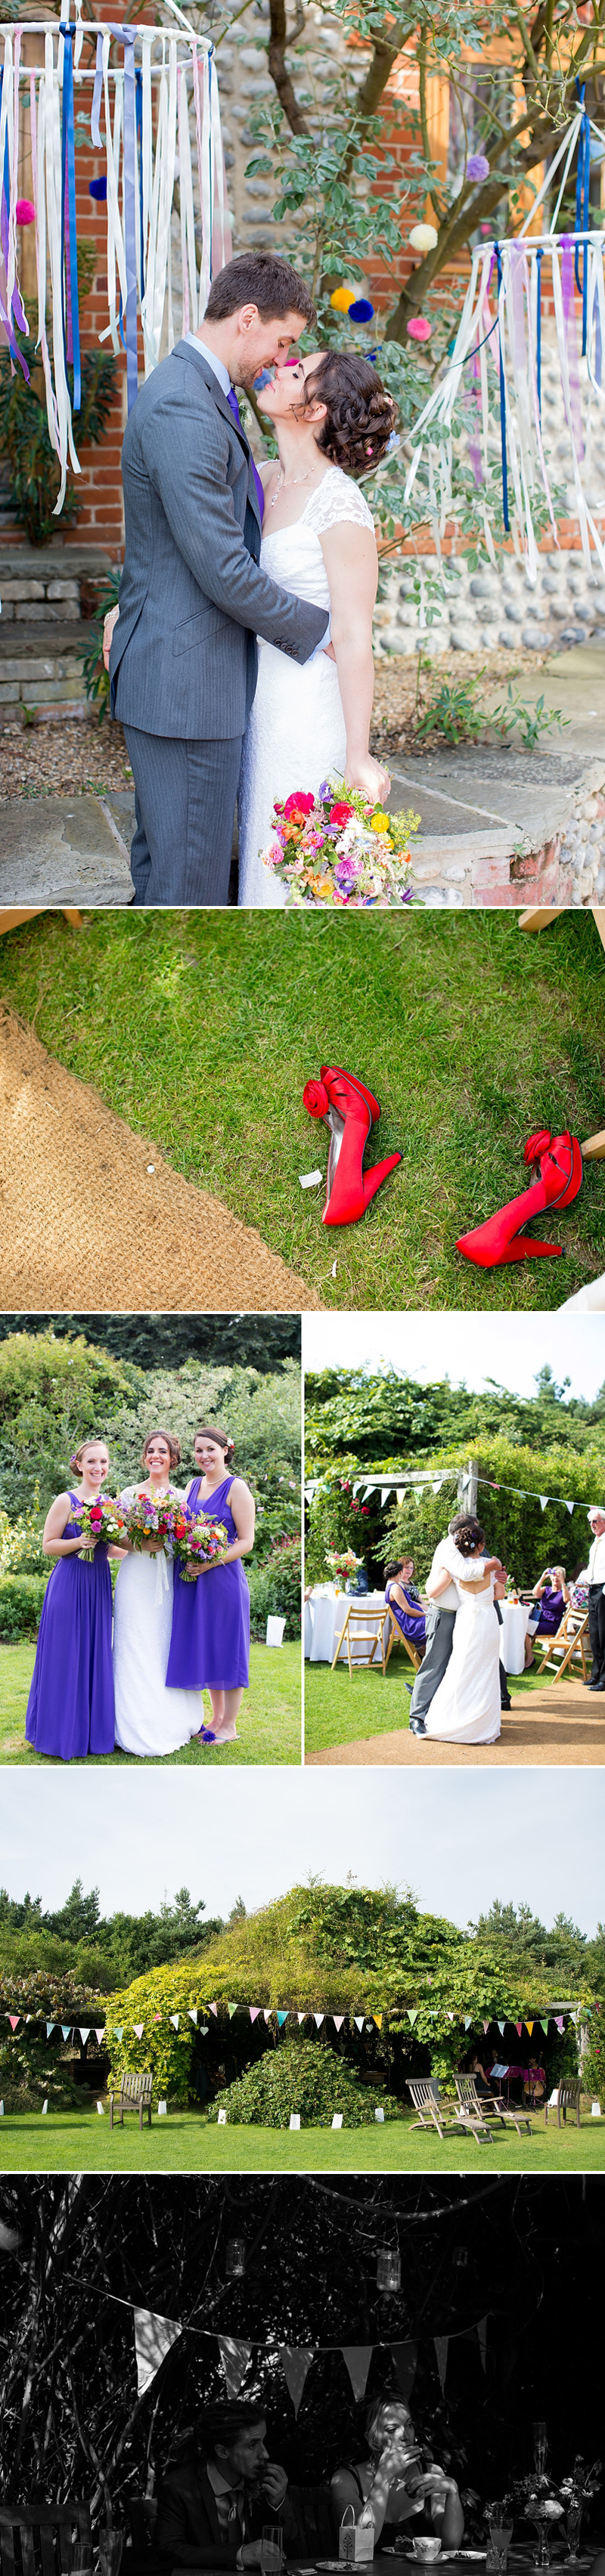 rustic-outdoor-wedding-chaucer-barn-norfolk-katherine-ashdown-photography-layer-6